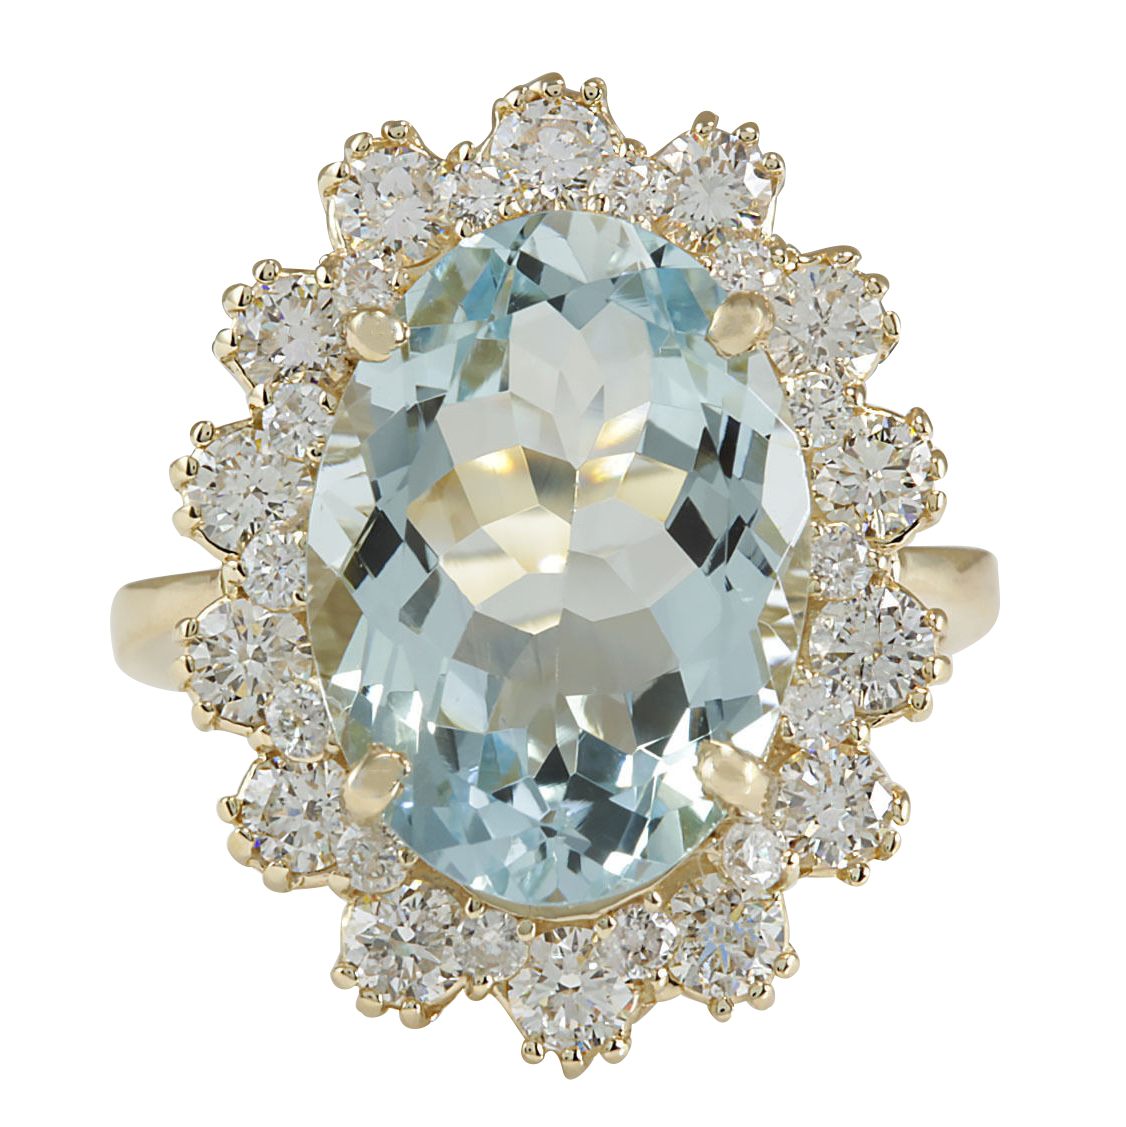 7.11CTW Natural Aquamarine And Diamond Ring In 14K Solid Yellow Gold by